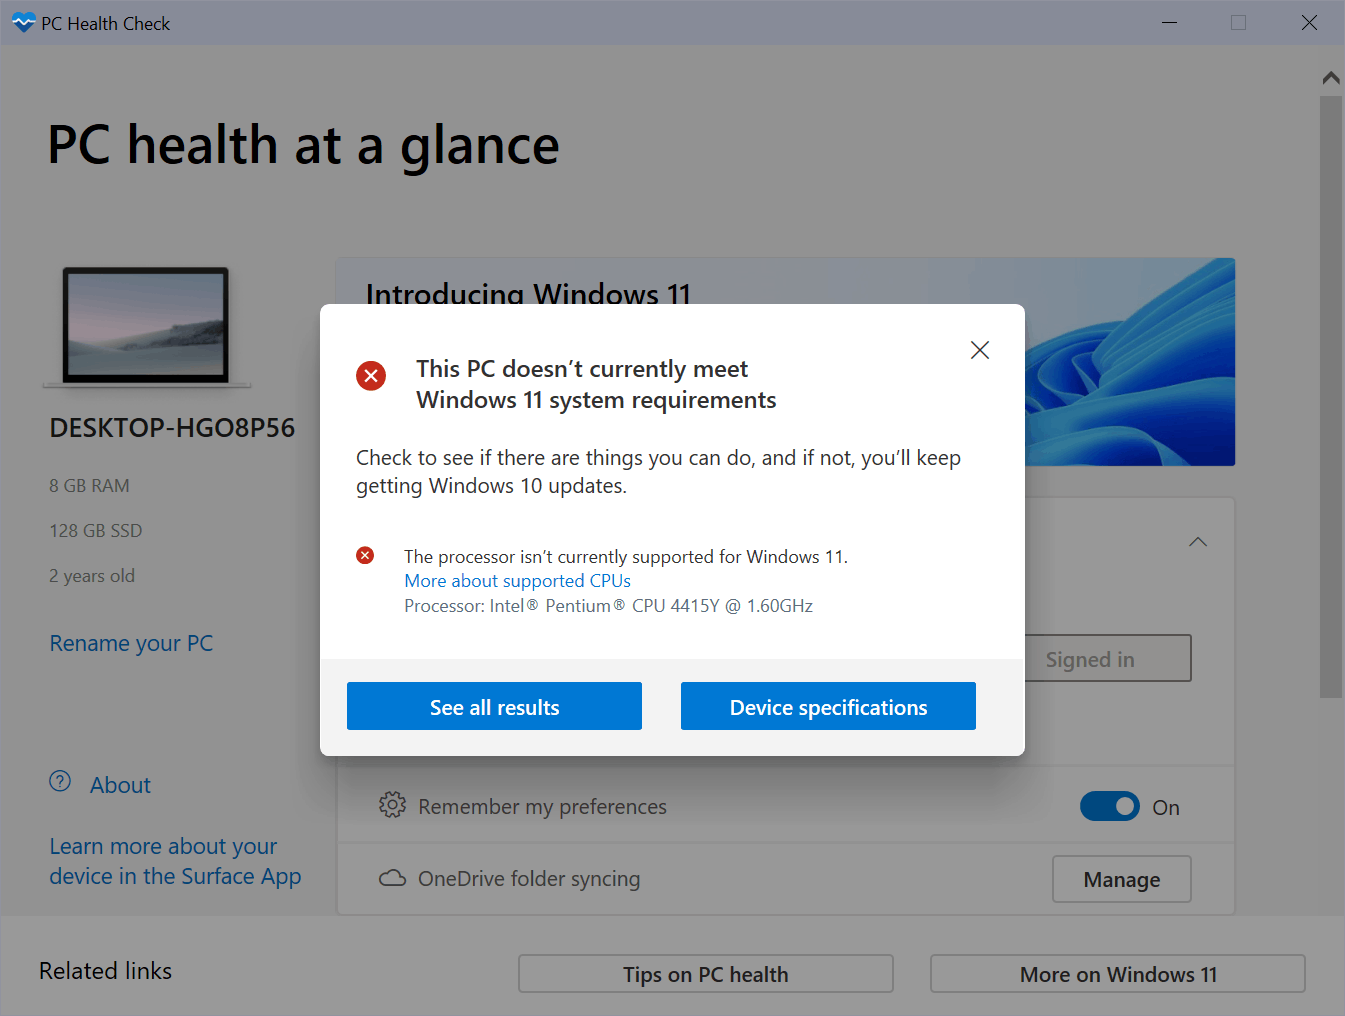 Windows 11 computer health check requirements